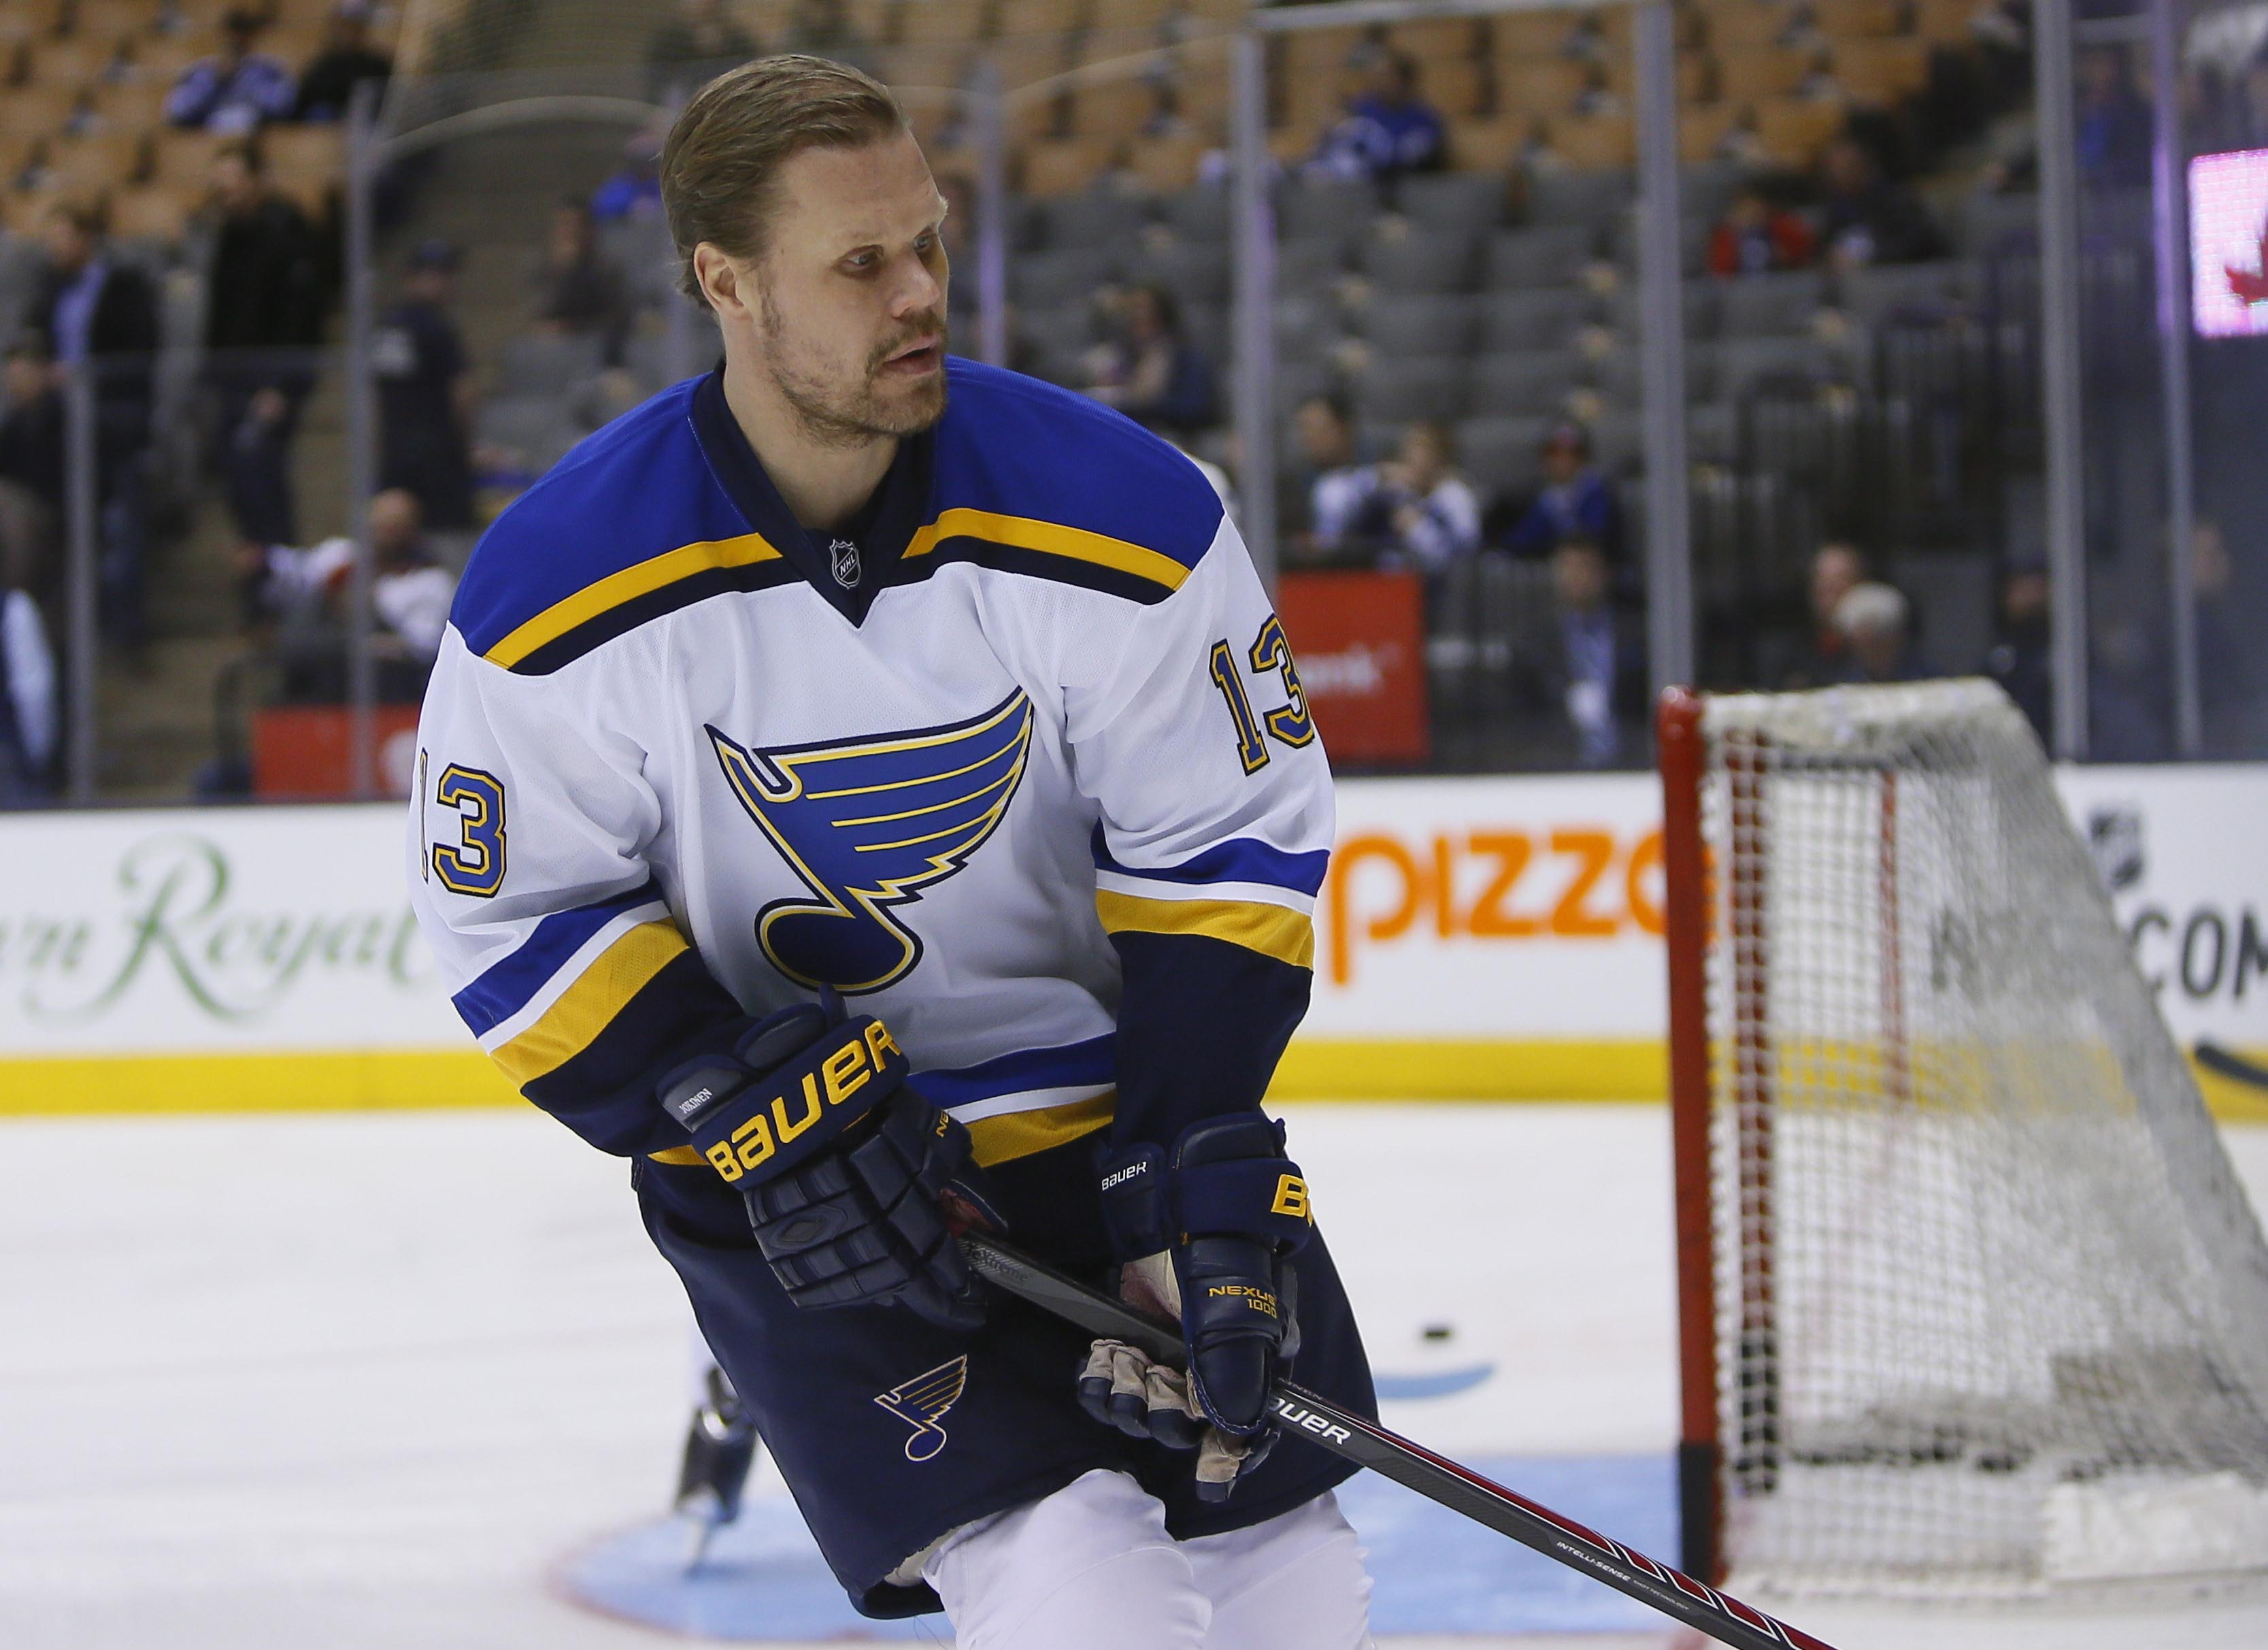 8429510-nhl-st.-louis-blues-at-toronto-maple-leafs